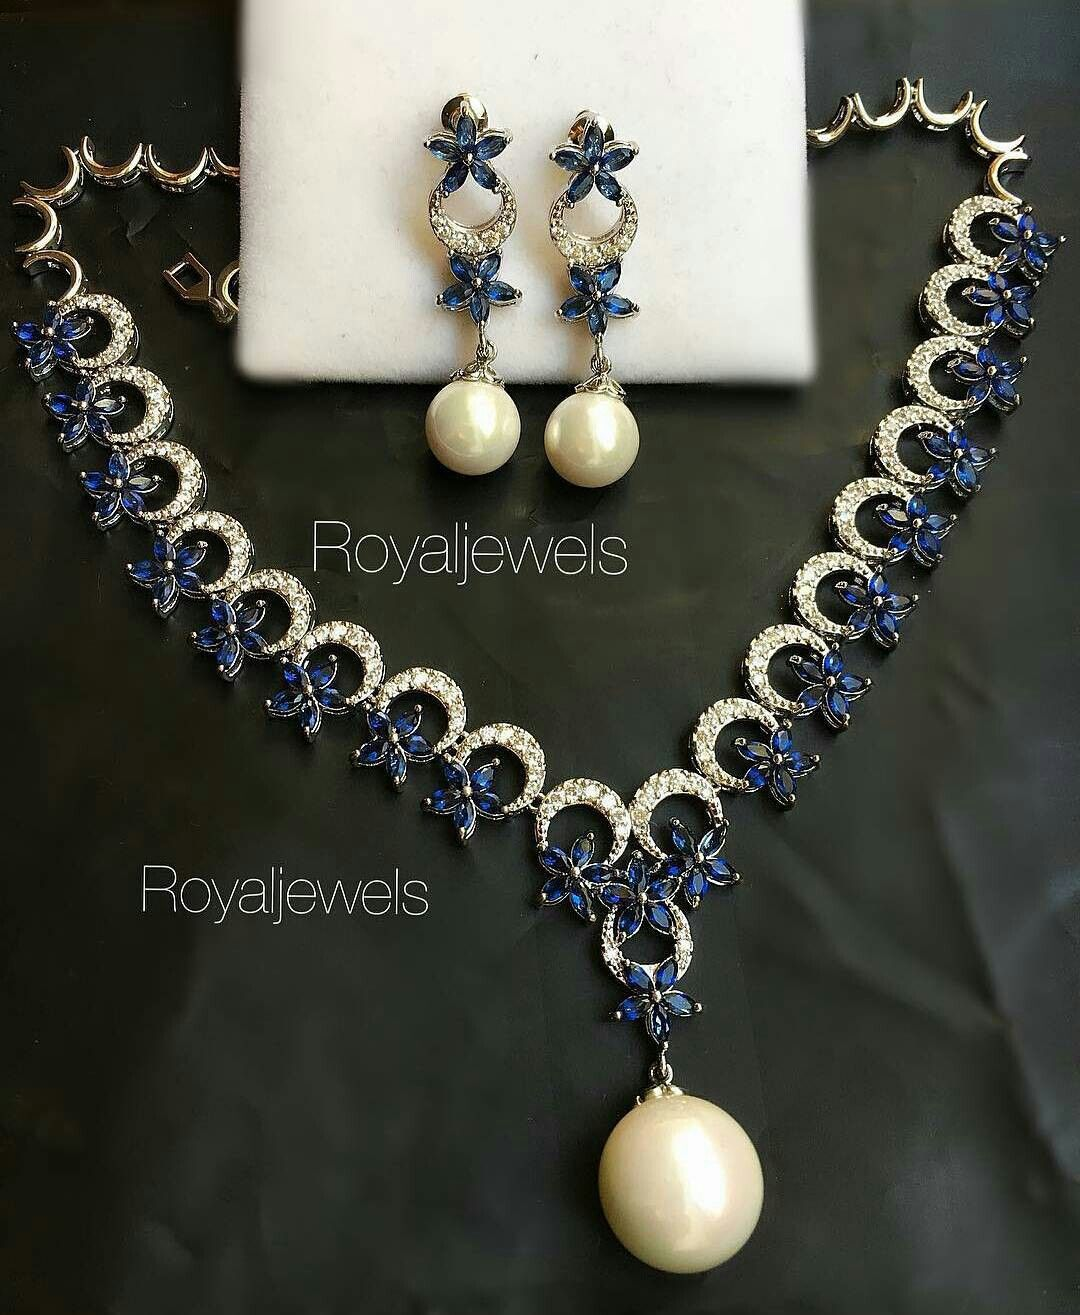 Royaljewels pearls pinterest jewel pearls and sapphire